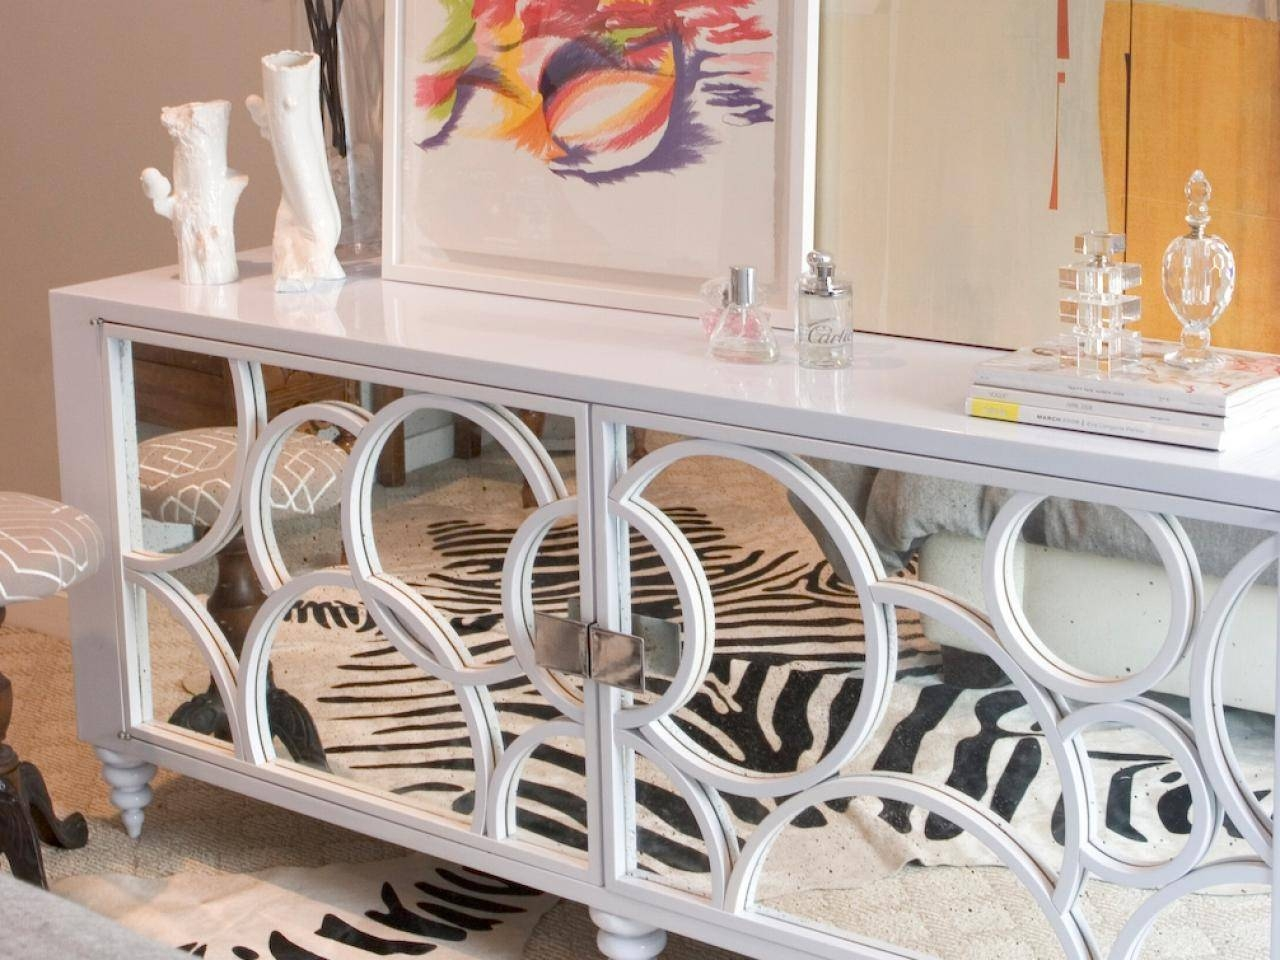 Mirrored Sideboards For A Master Bedroom Decor Throughout Mirror Sideboards (View 14 of 15)